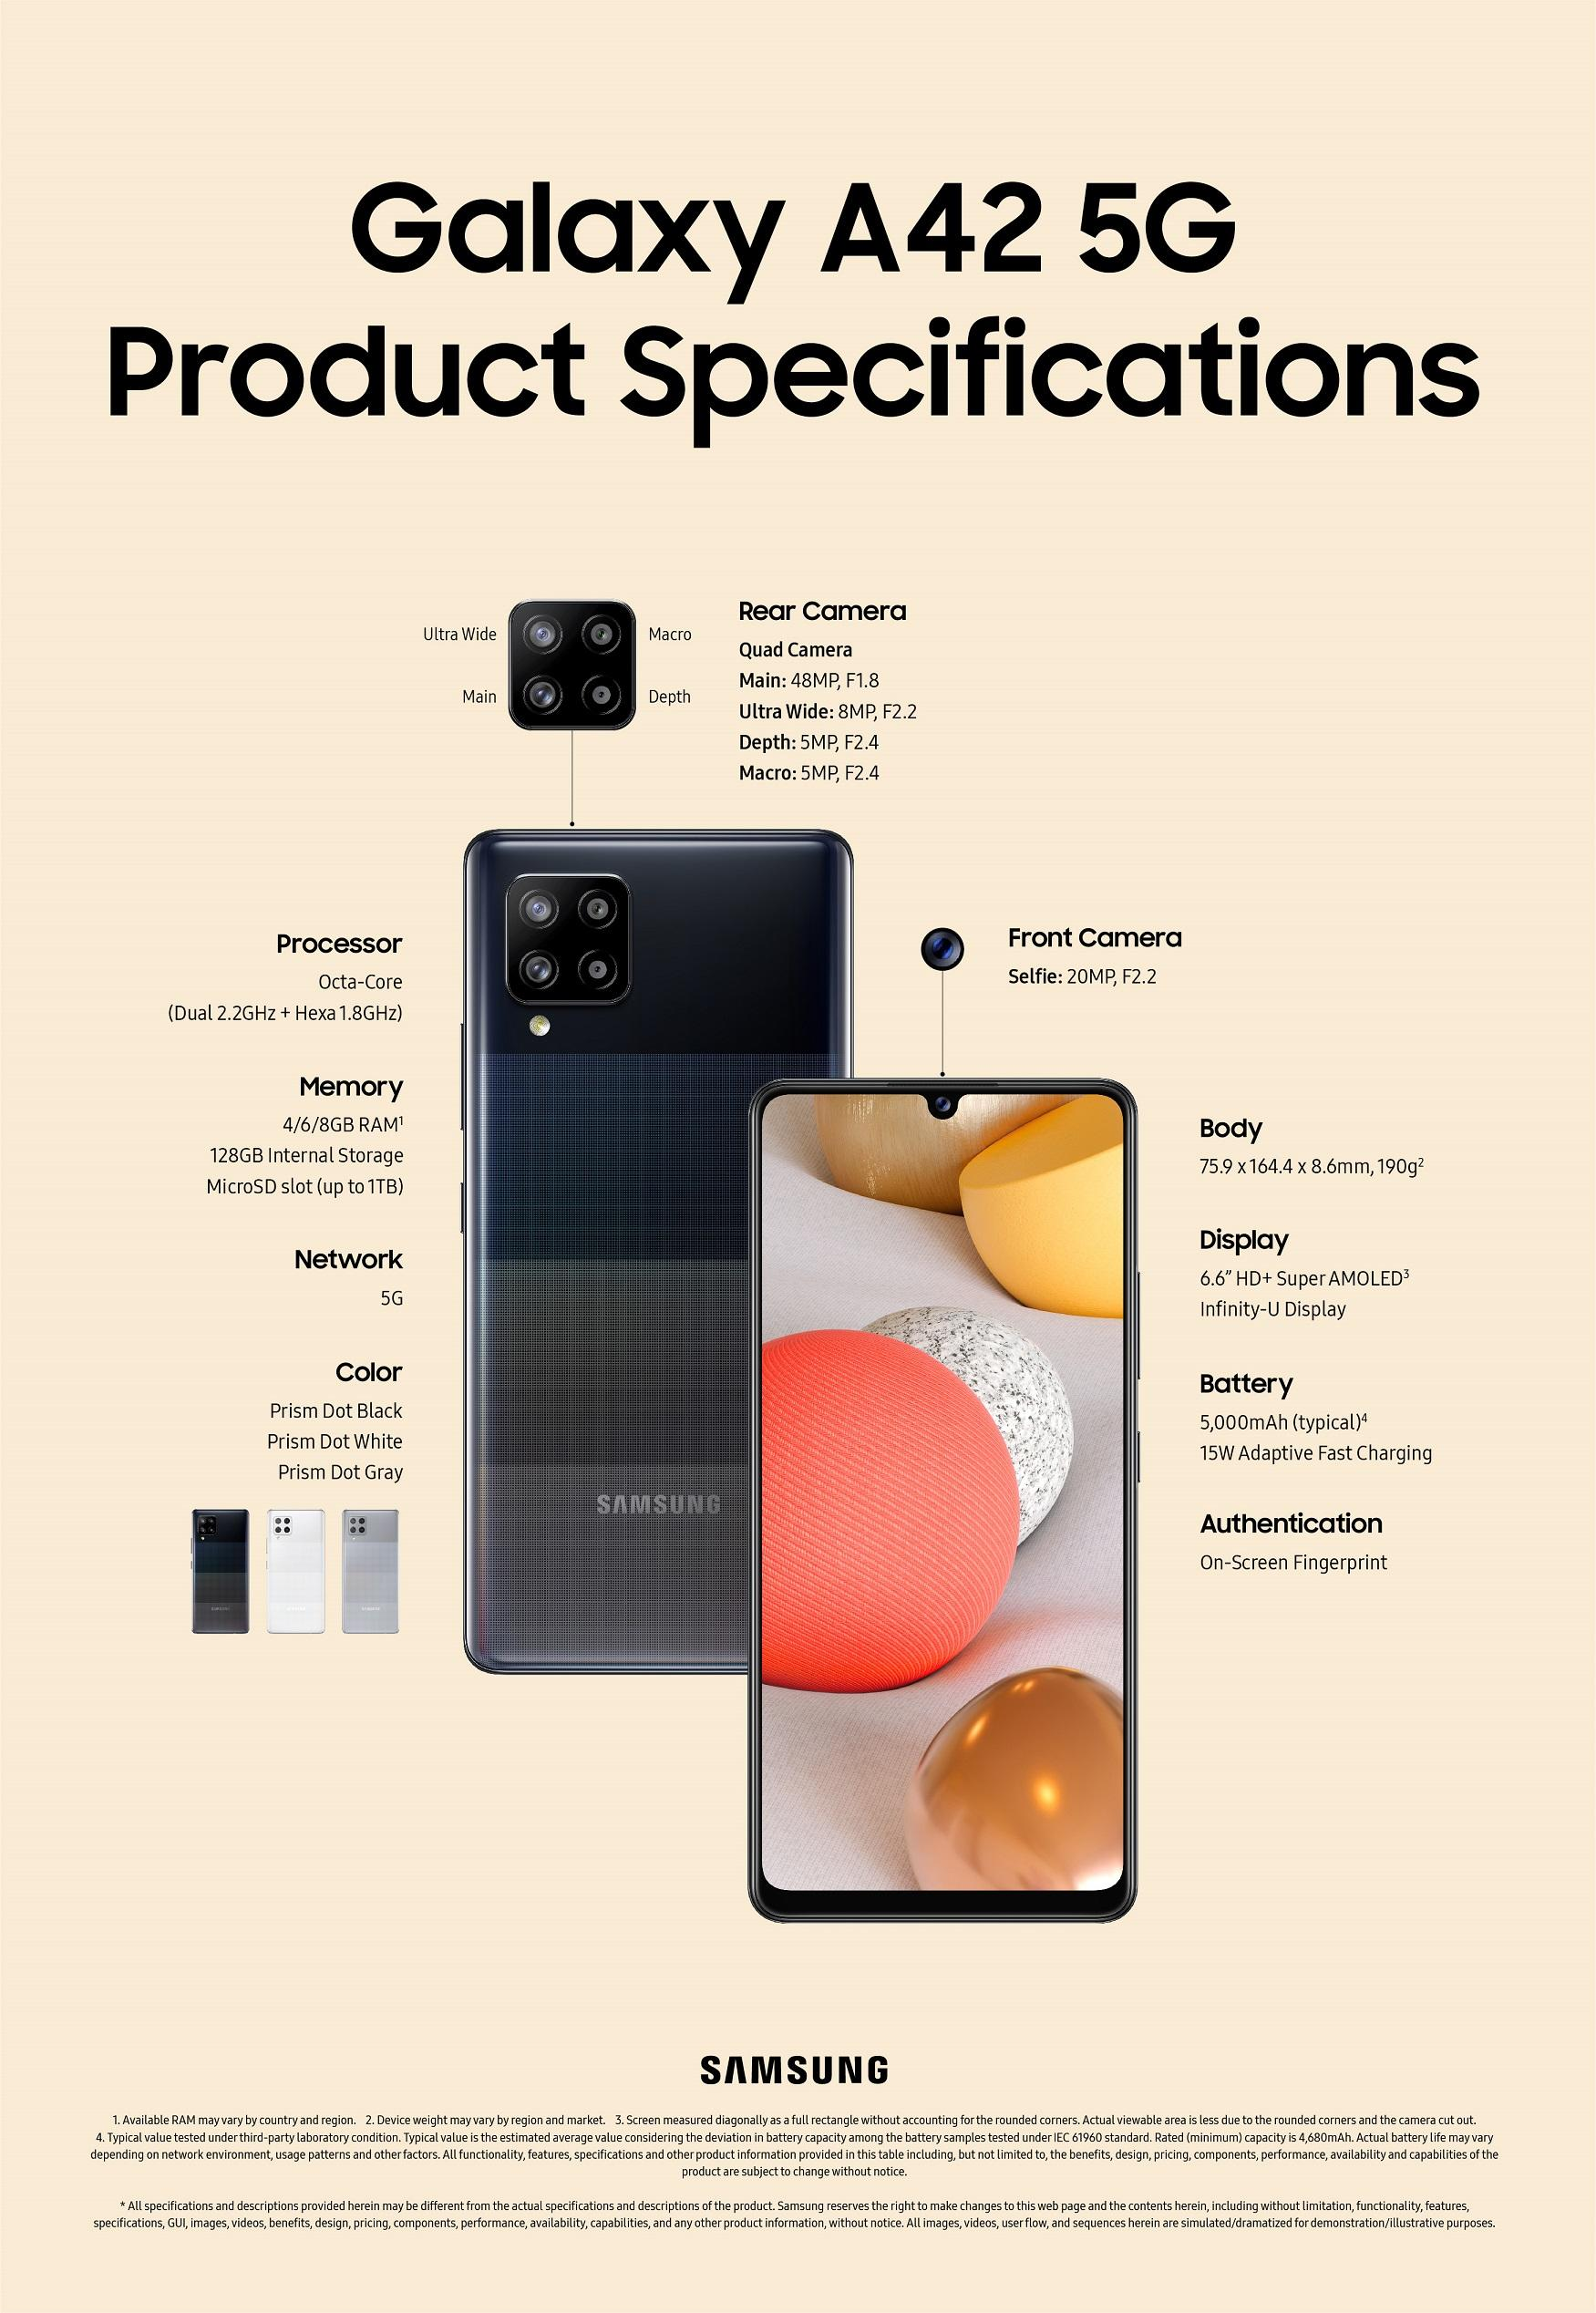 201008_Galaxy_A425G_product_specifications_edit